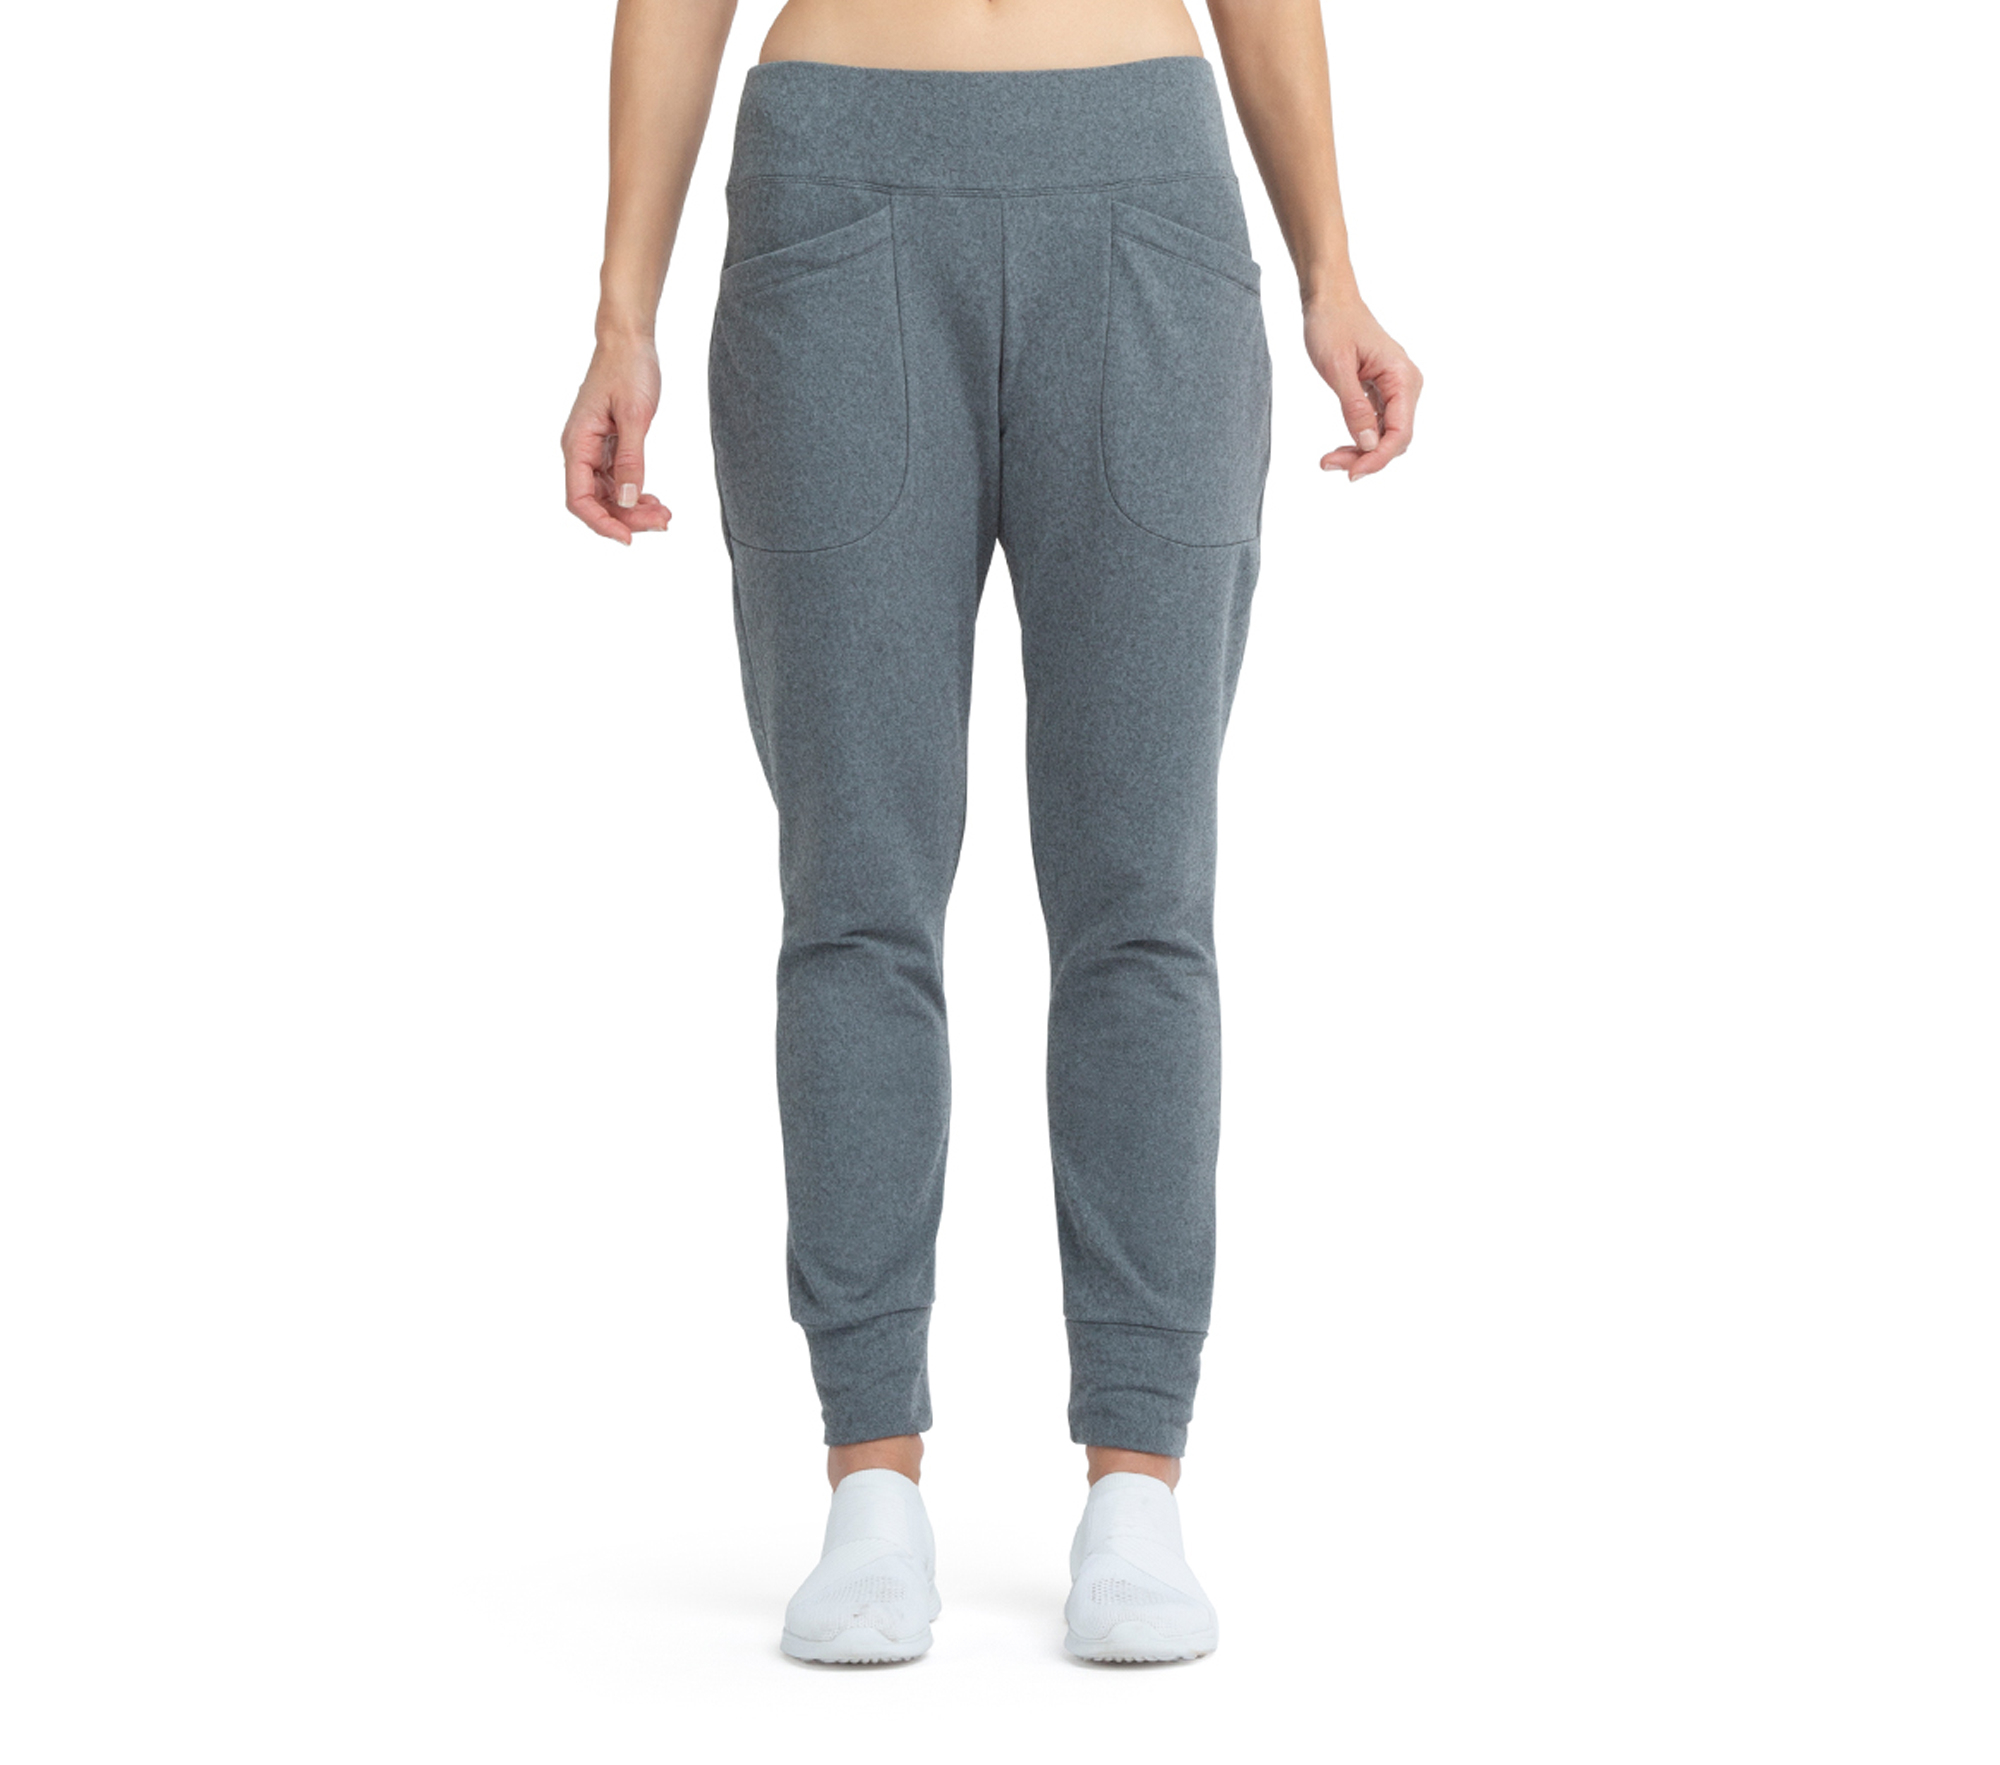 Pantaloni tecnici Power-stretch